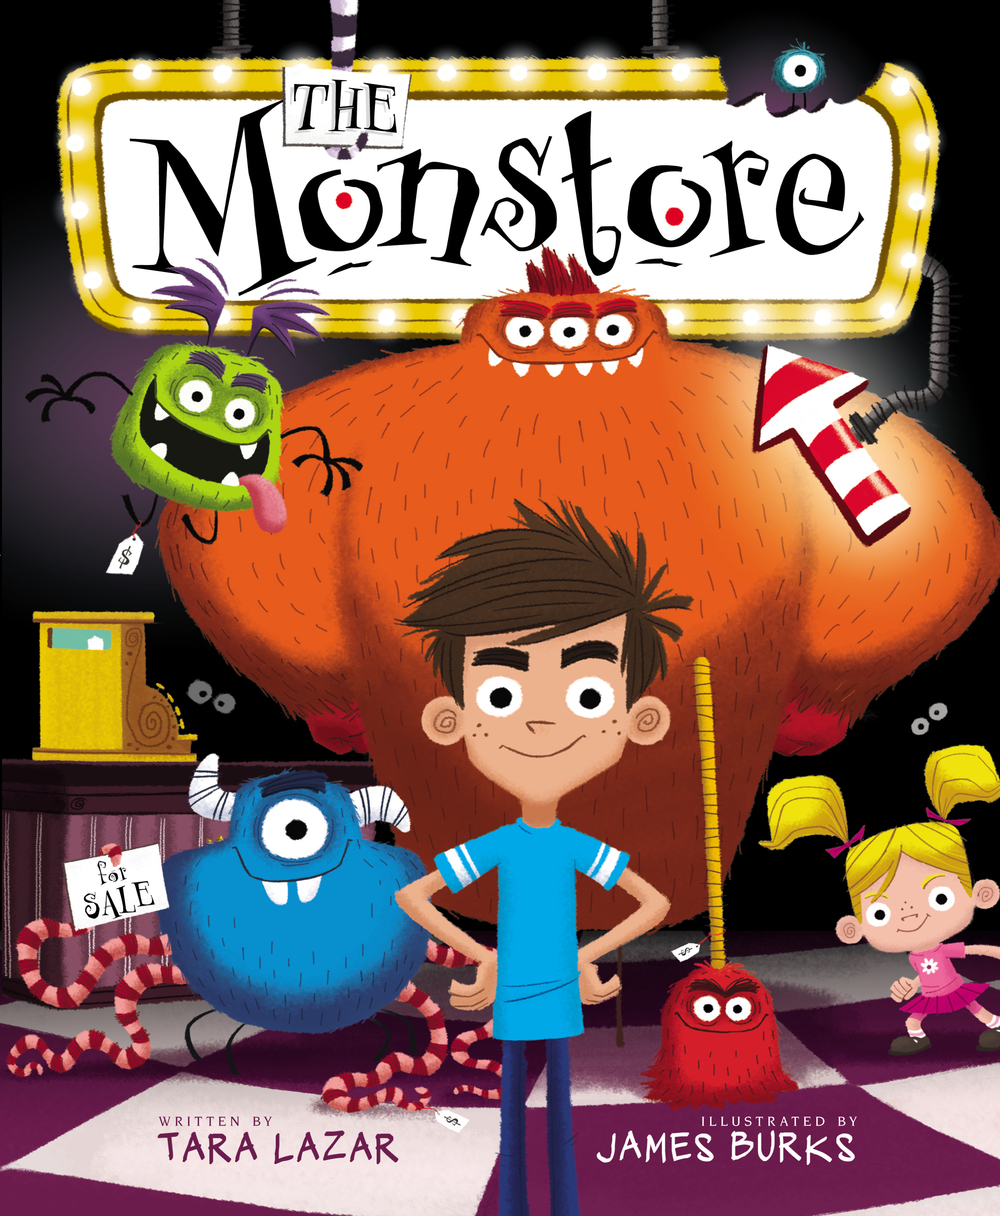 monstore_cover.jpg